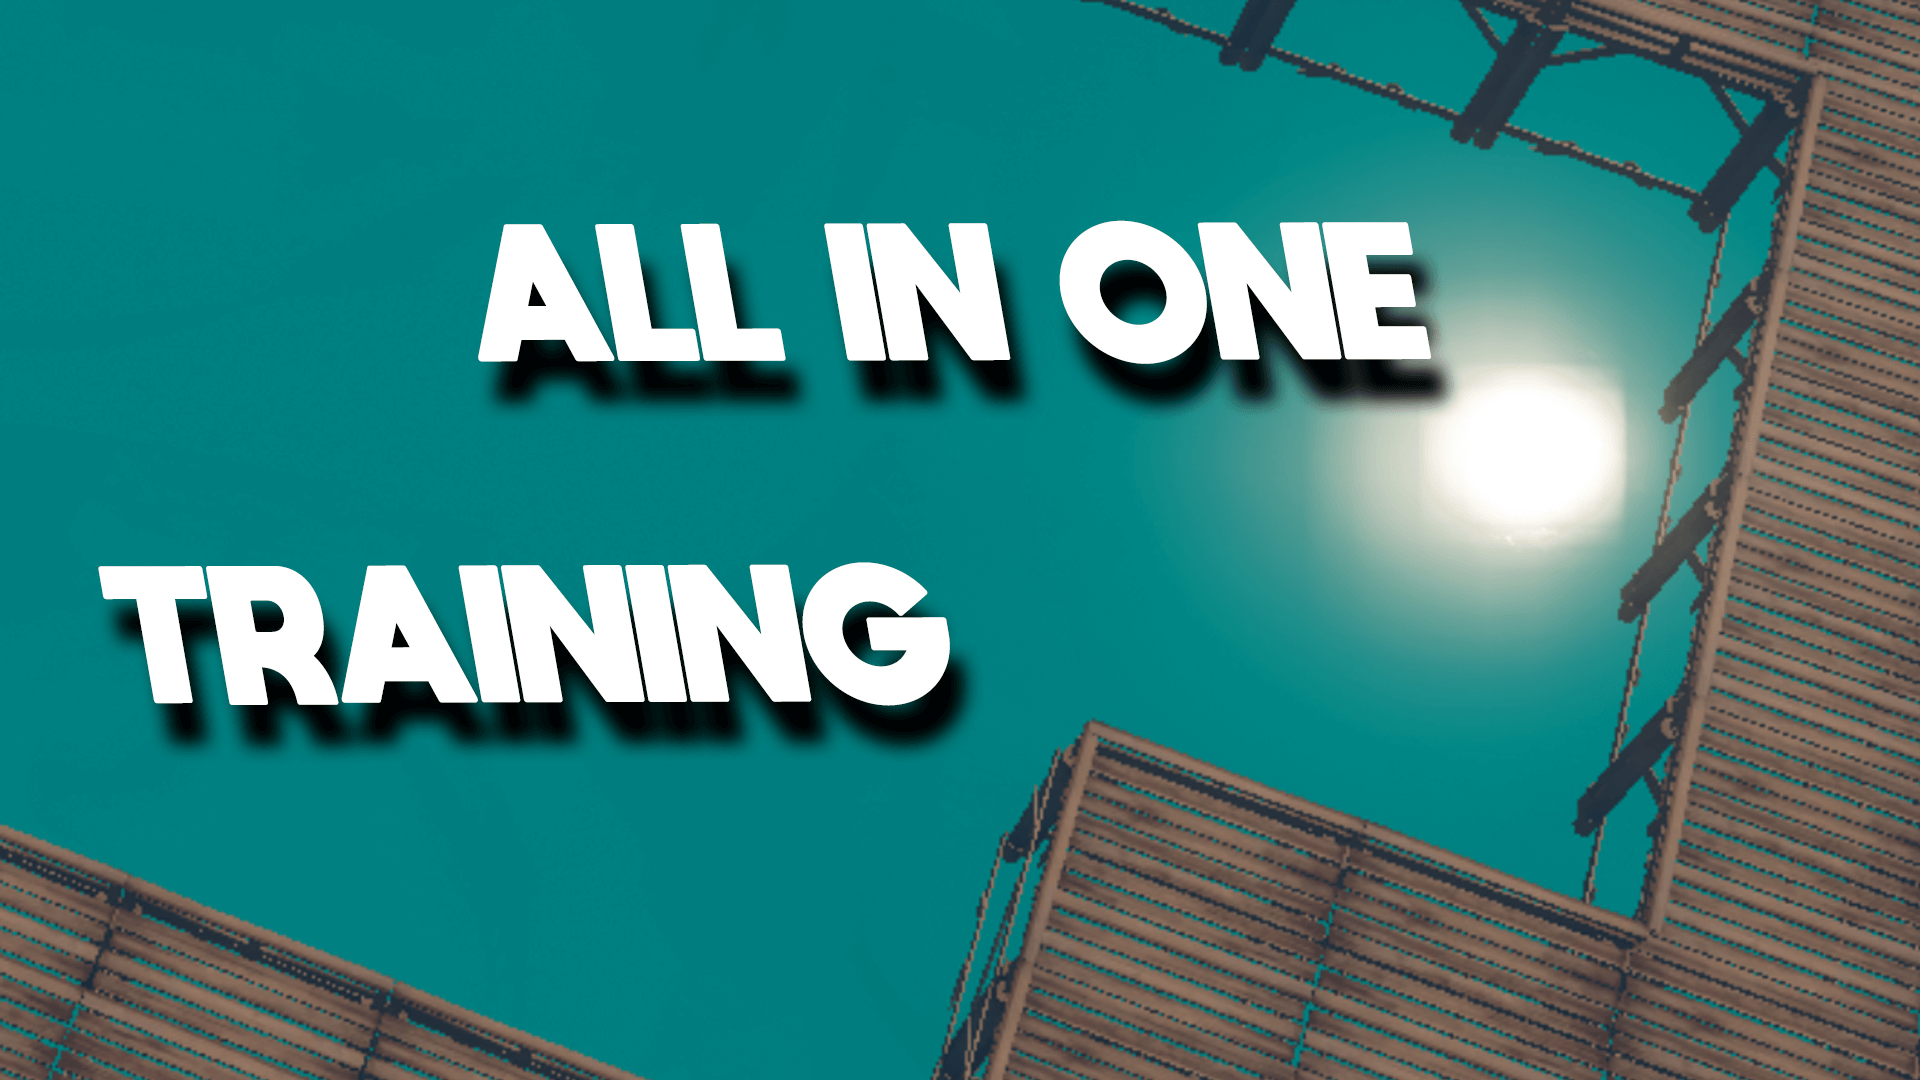 ALL IN ONE TRAINING